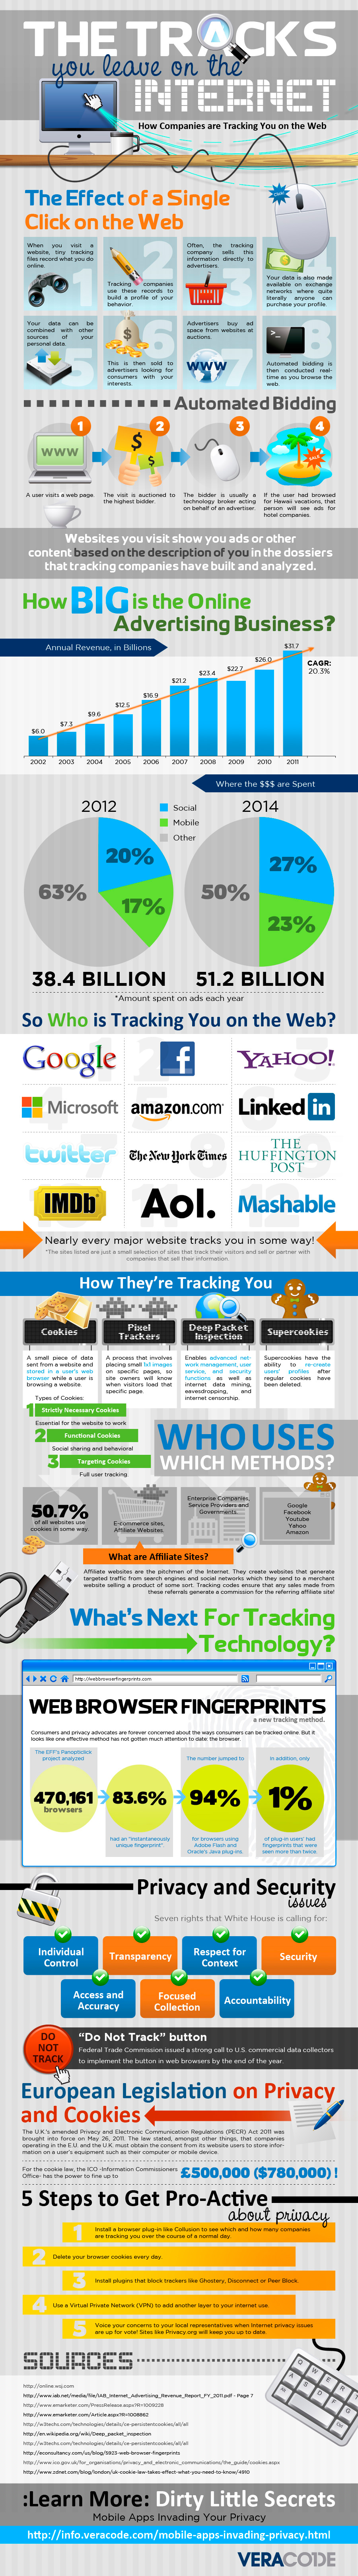 how-companies-track-you-on-the-web_509813e9d25d2